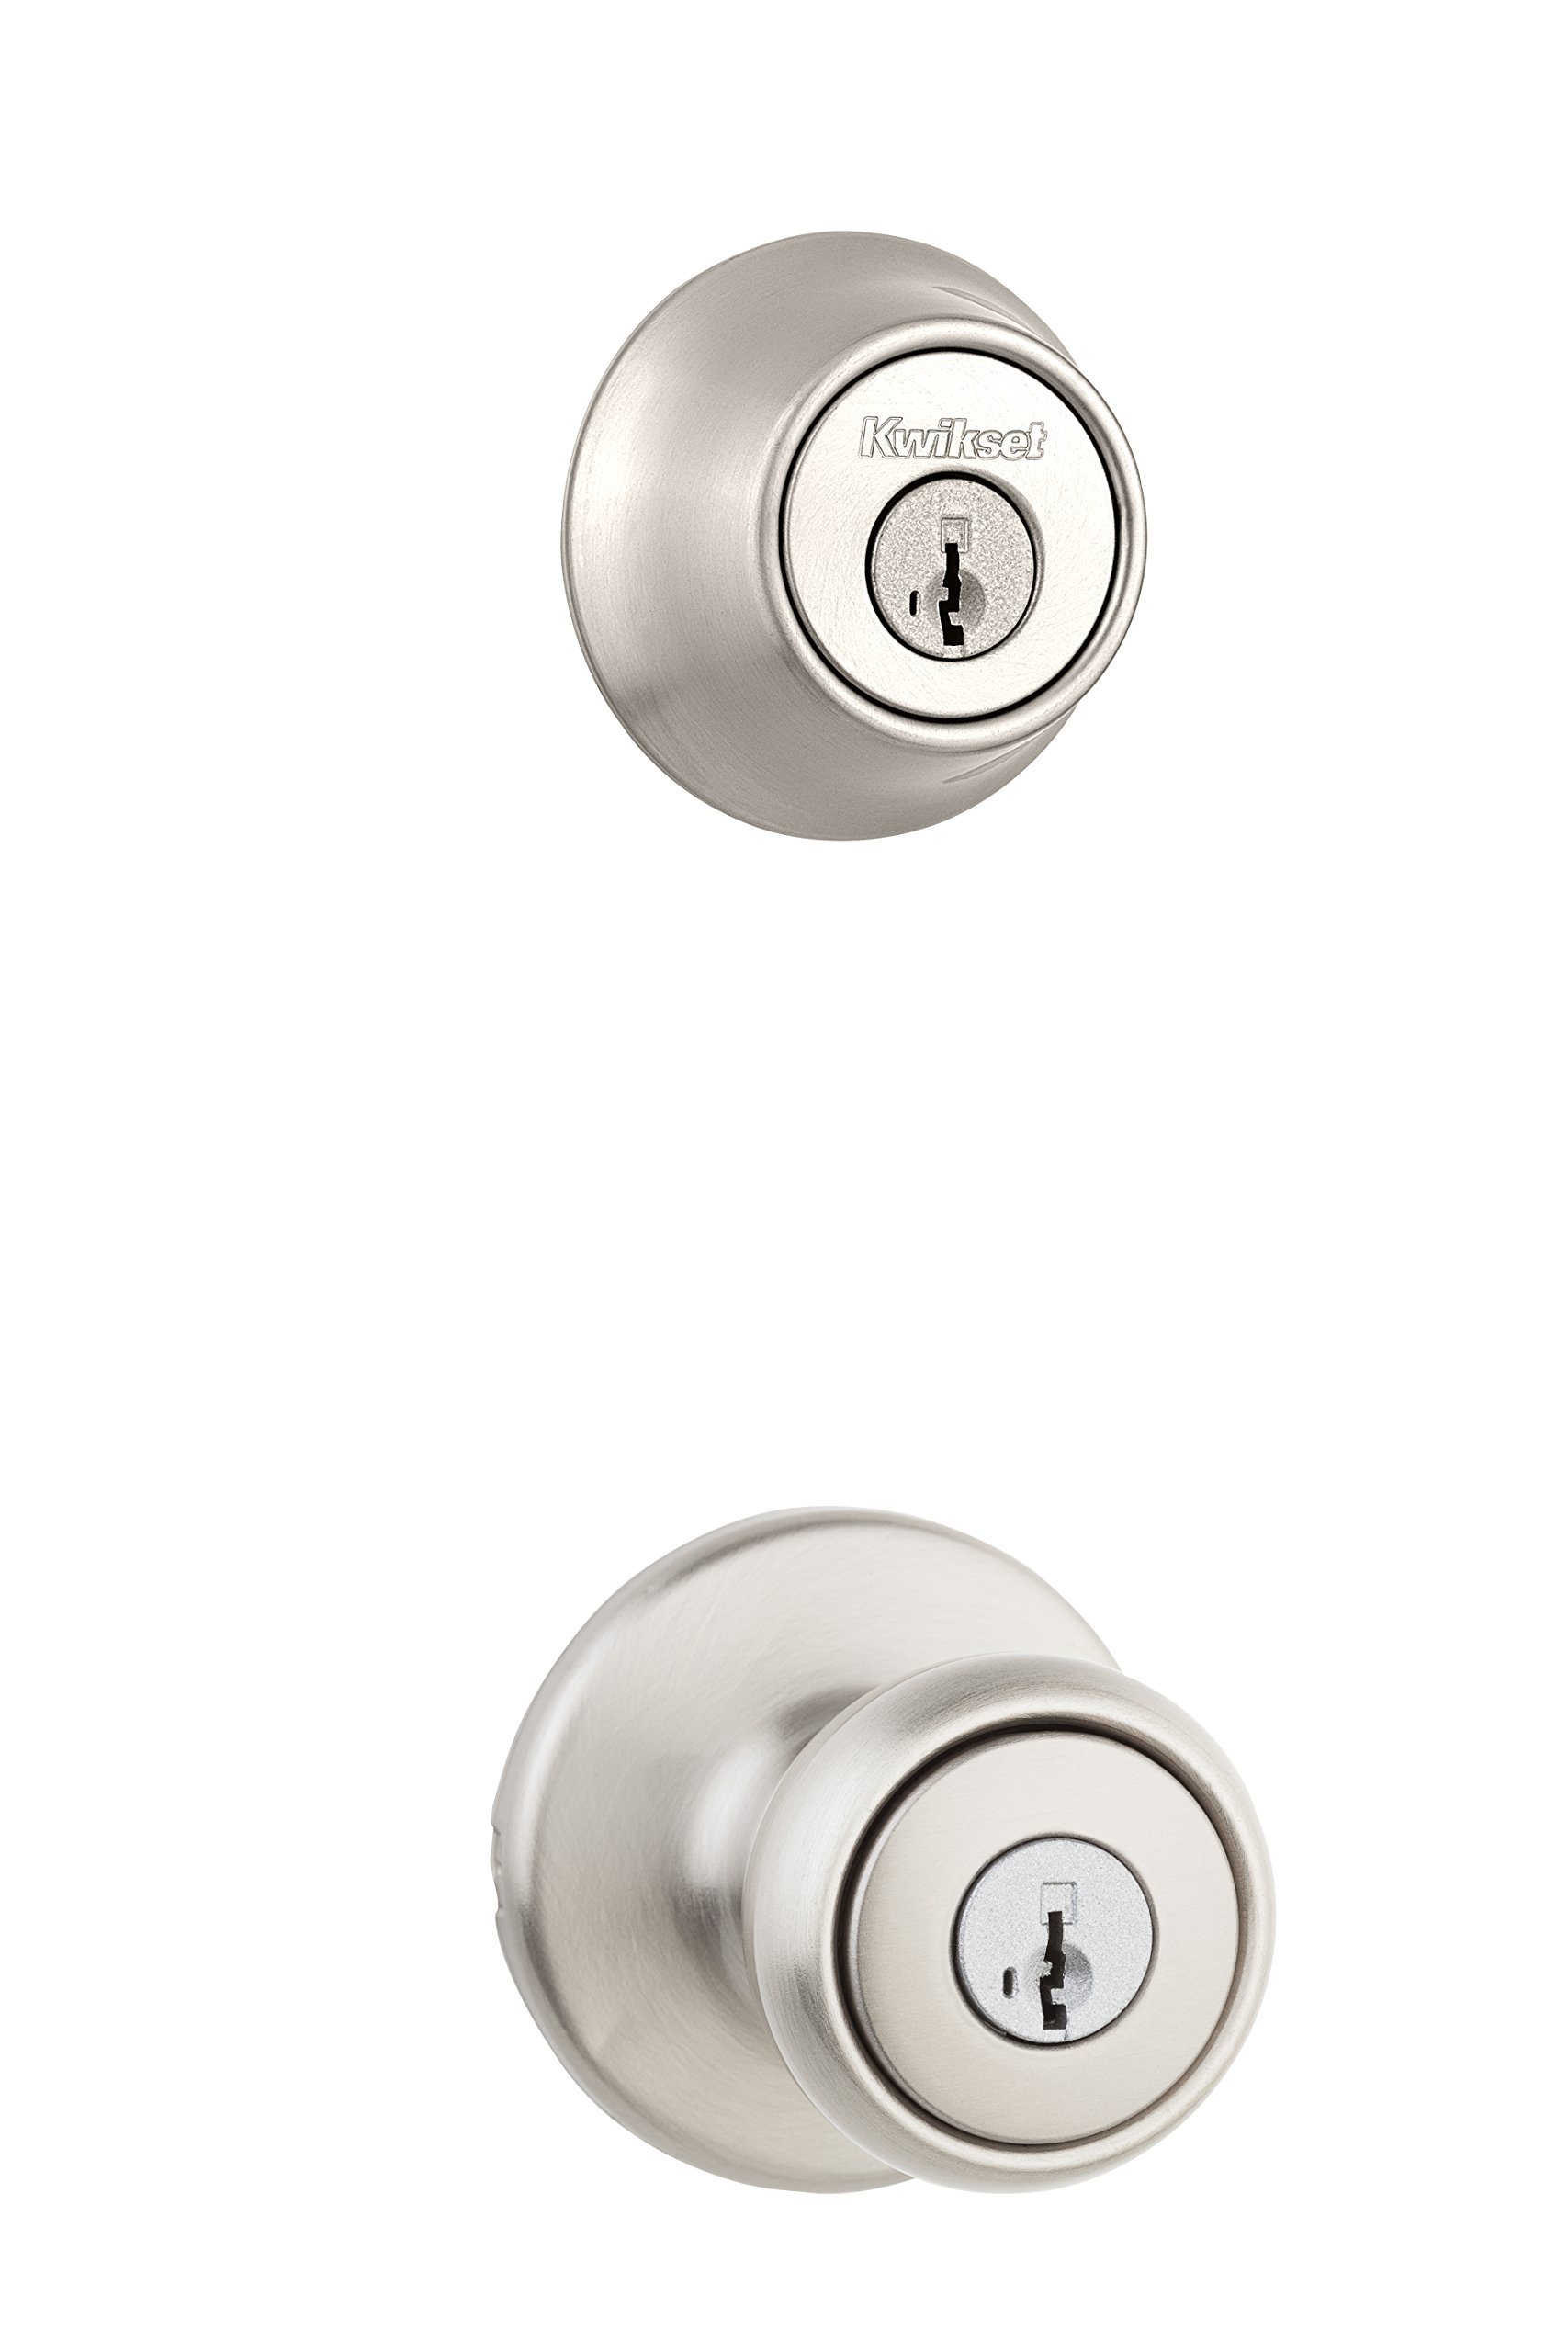 Kwikset 690 Tylo Keyed Entry Knob and Single Cylinder Deadbolt Combo Pack in Satin Nickel